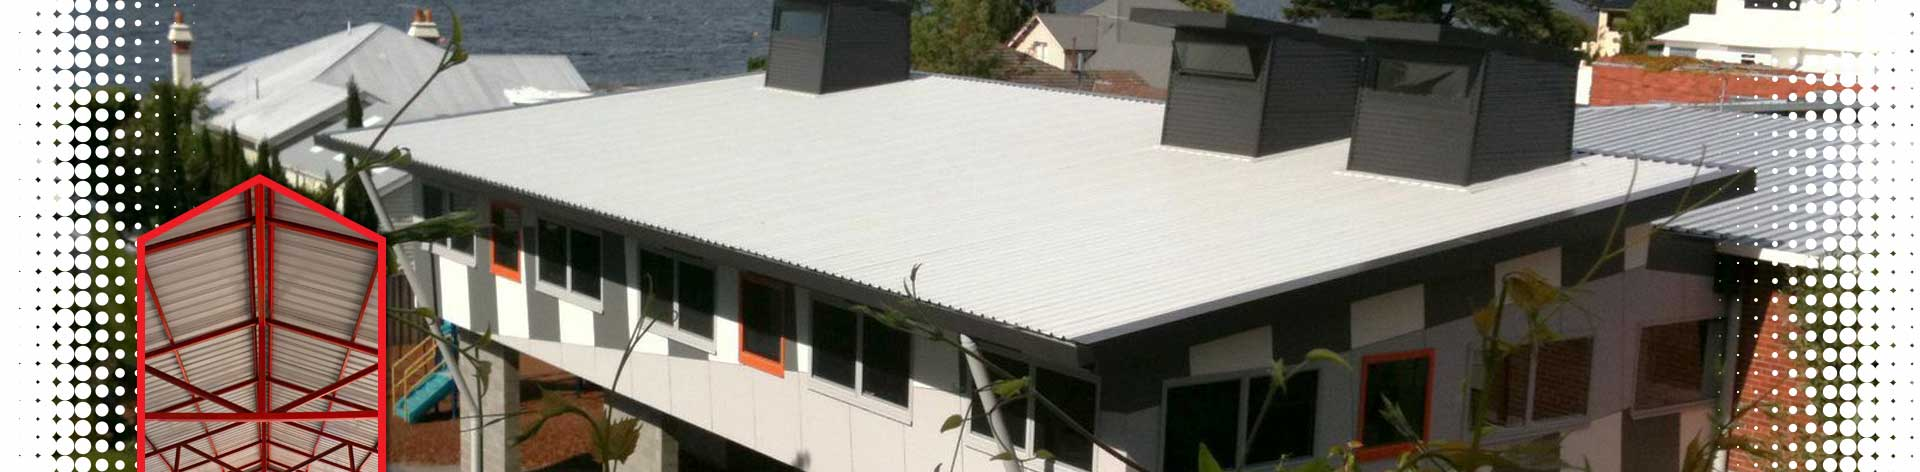 Roof systems by Just Roofing